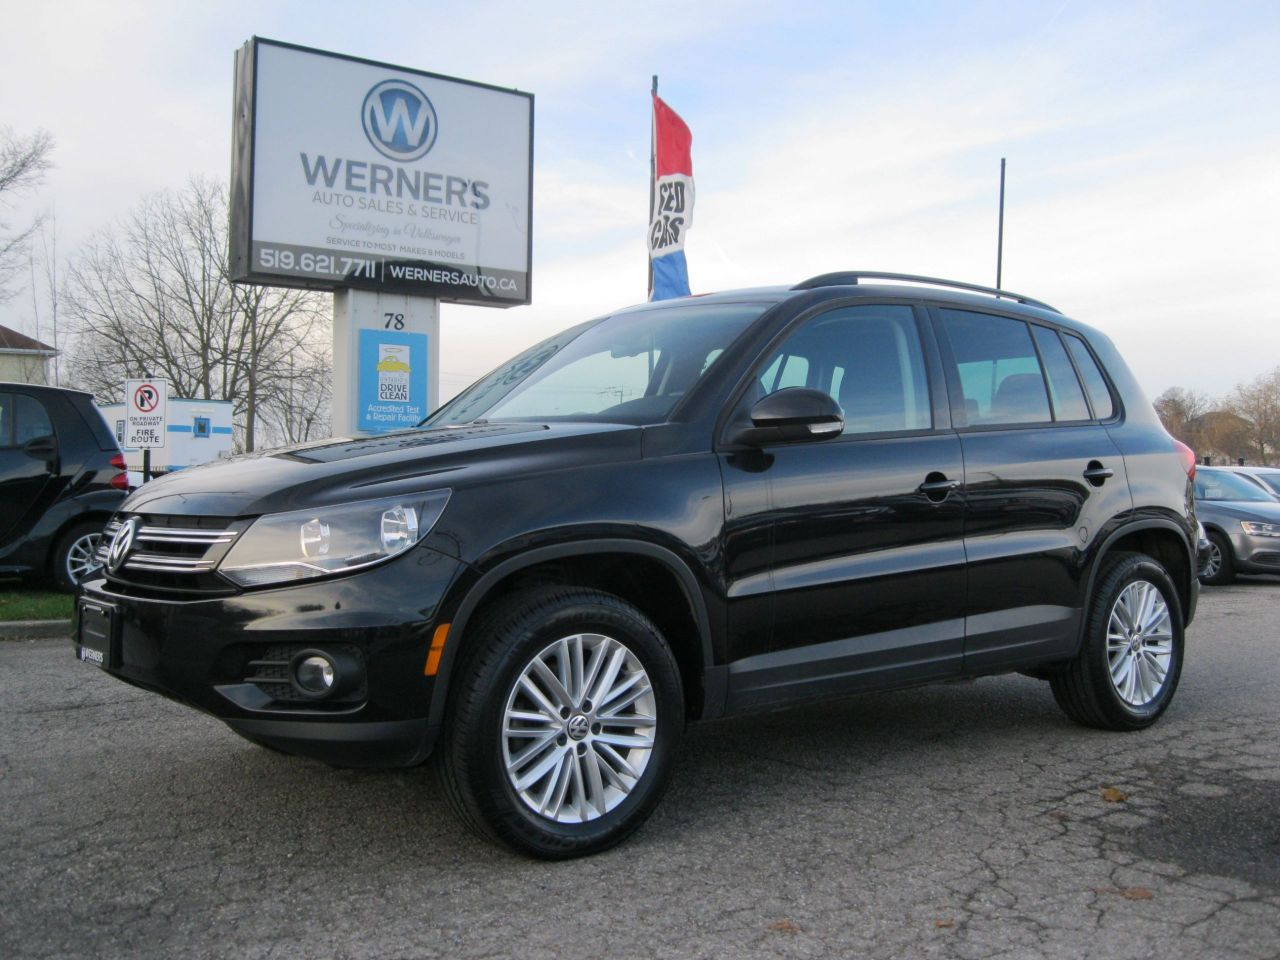 further suv and look volkswagen sedan footprint car heritage this of crossover subaru no sports tiguan article as a the smaller parking strong mix review than